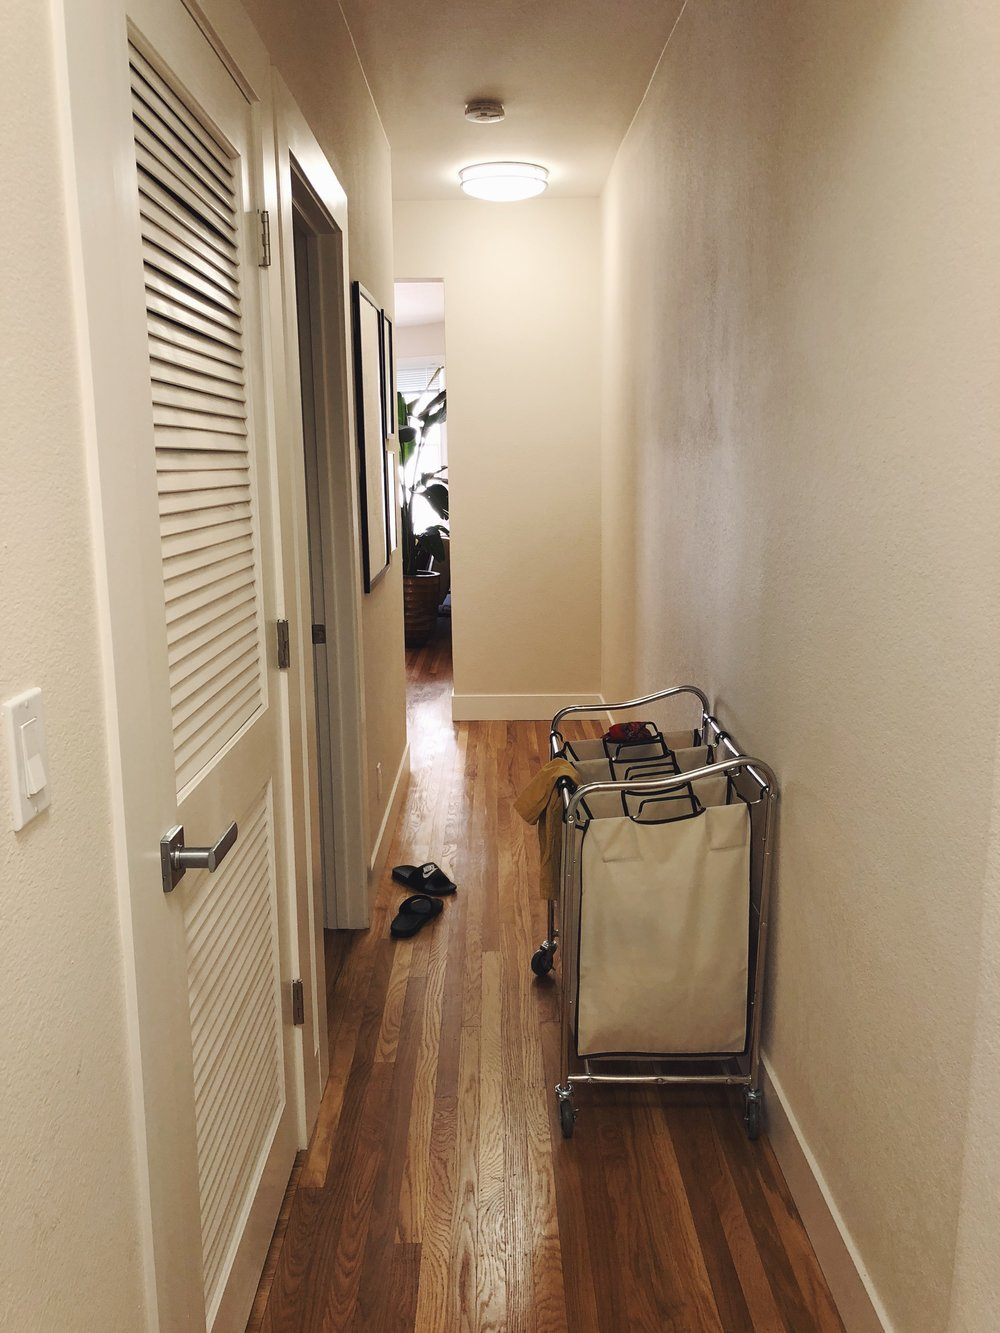 Hallway, by the Laundry room